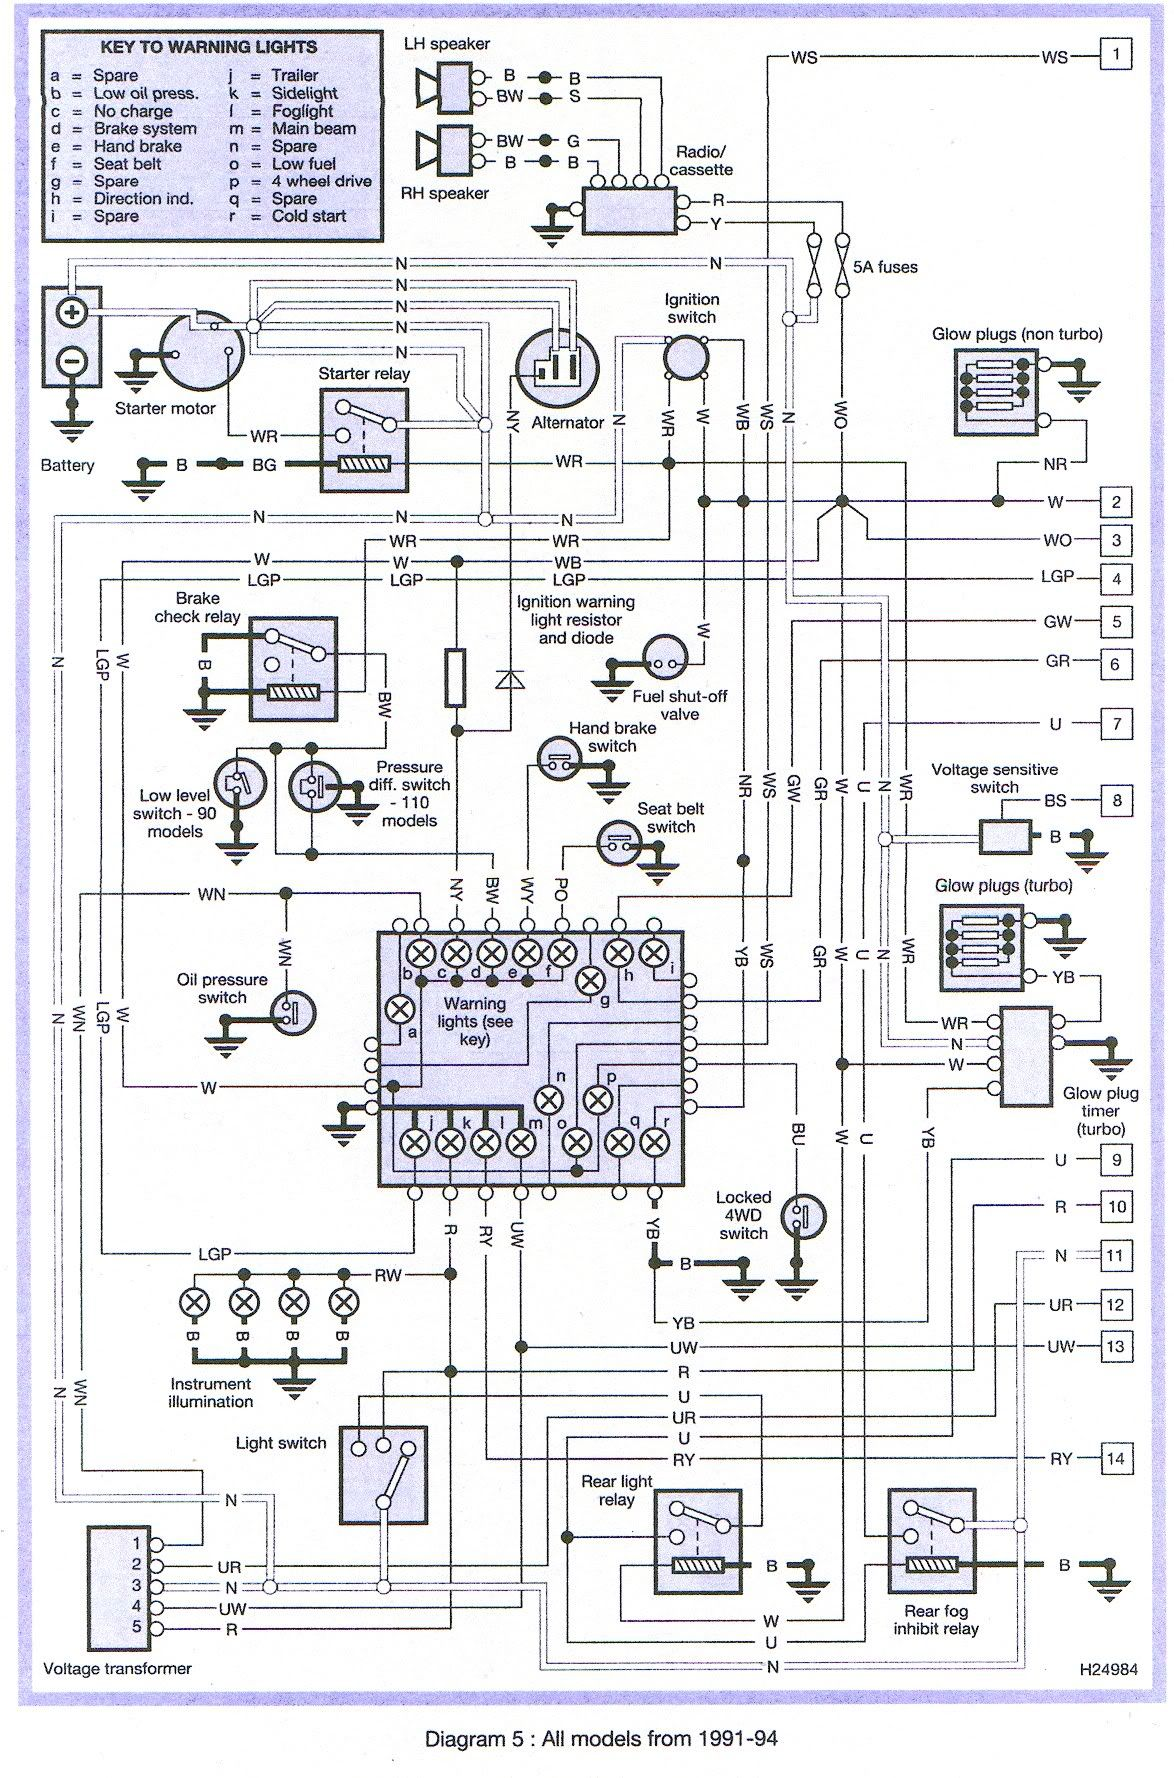 07629544bfff38ad2881b2c21312c6e6 land rover discovery wiring diagram manual repair with engine land rover discovery td5 wiring diagram at creativeand.co